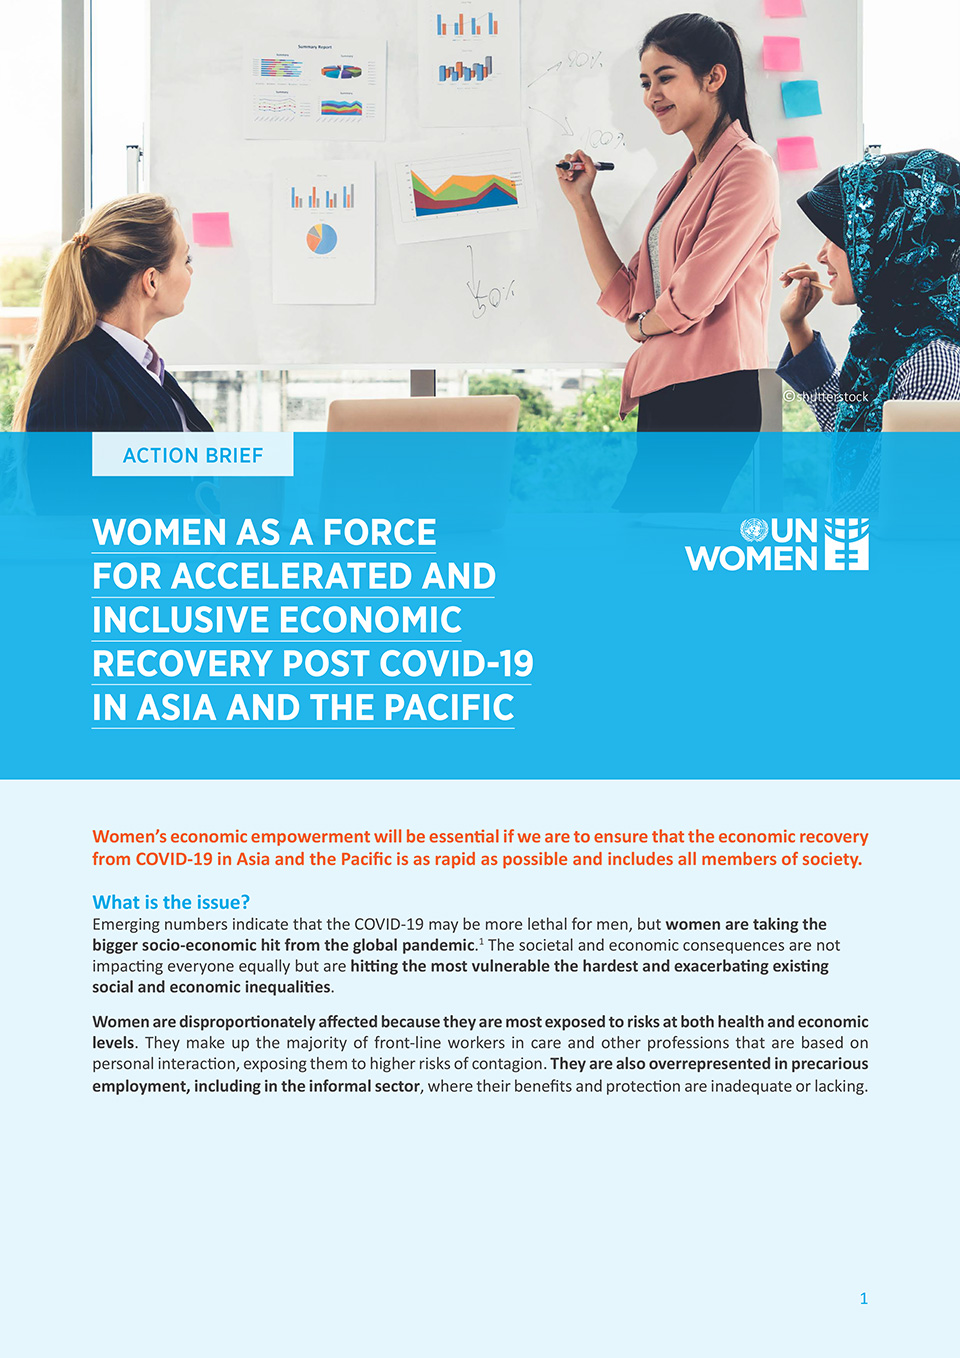 Women as a Force for Accelerated and Inclusive Economic Recovery, post COVID-19 in Asia-Pacific